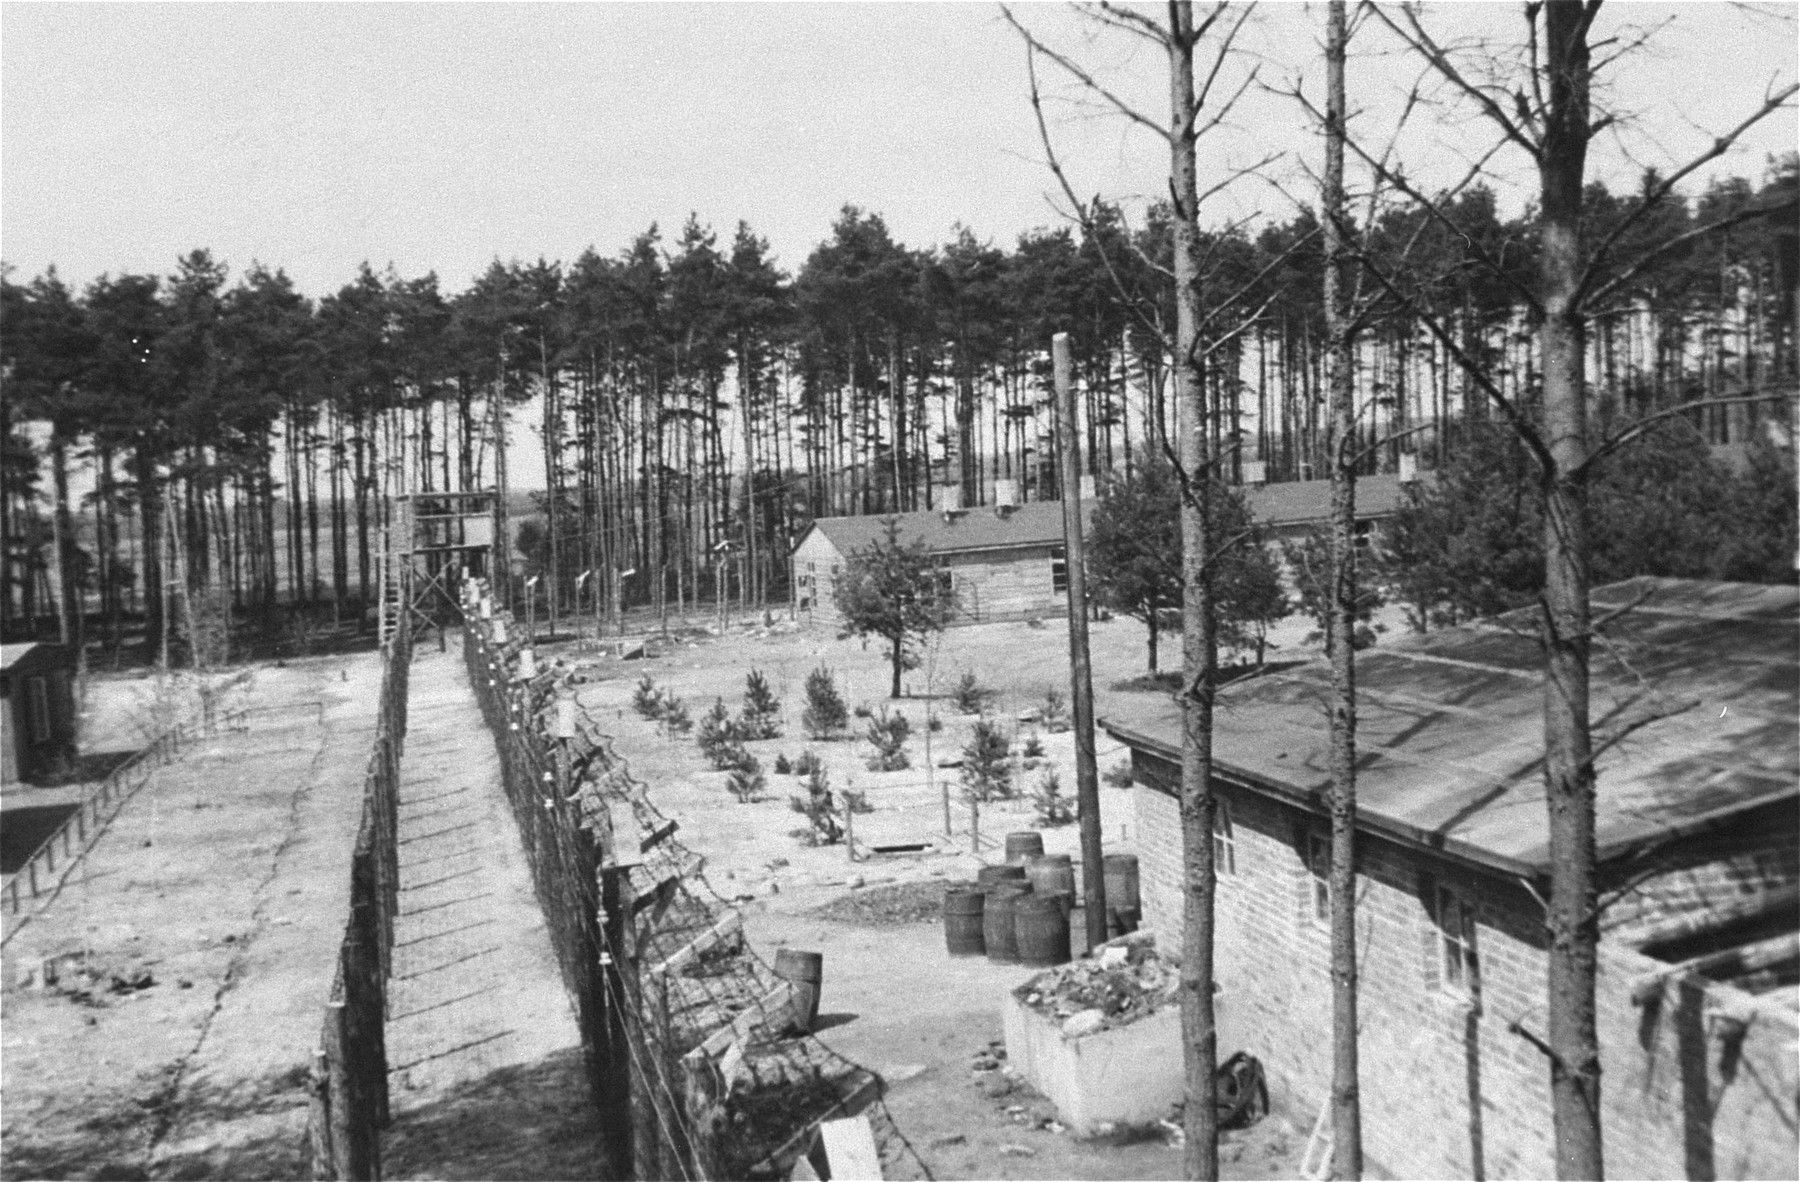 View of the women's camp at Woebbelin as seen from a guard tower.